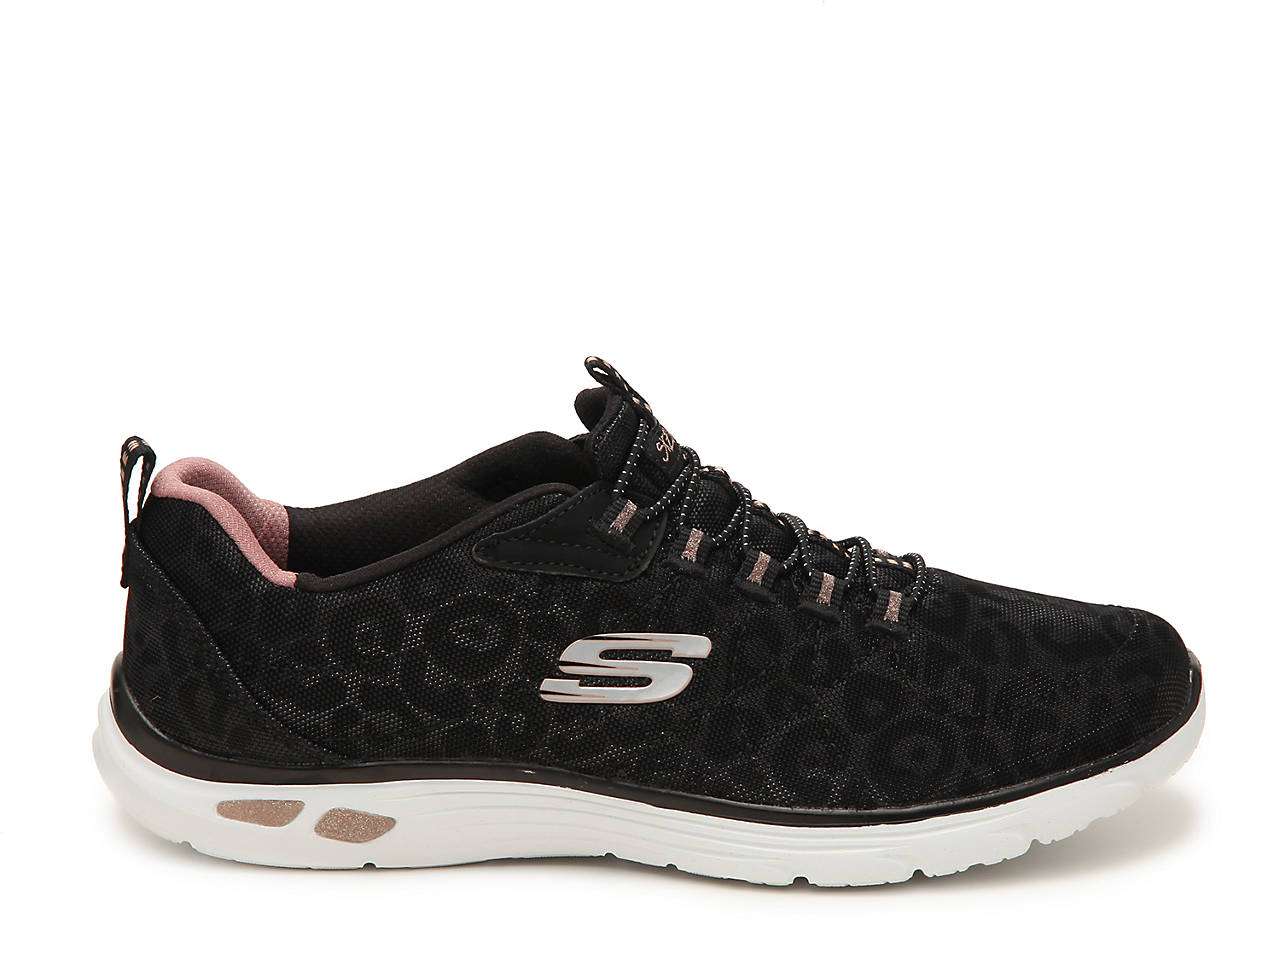 Skechers Relaxed Fit Empire D'Lux Spotted Slip On Sneaker